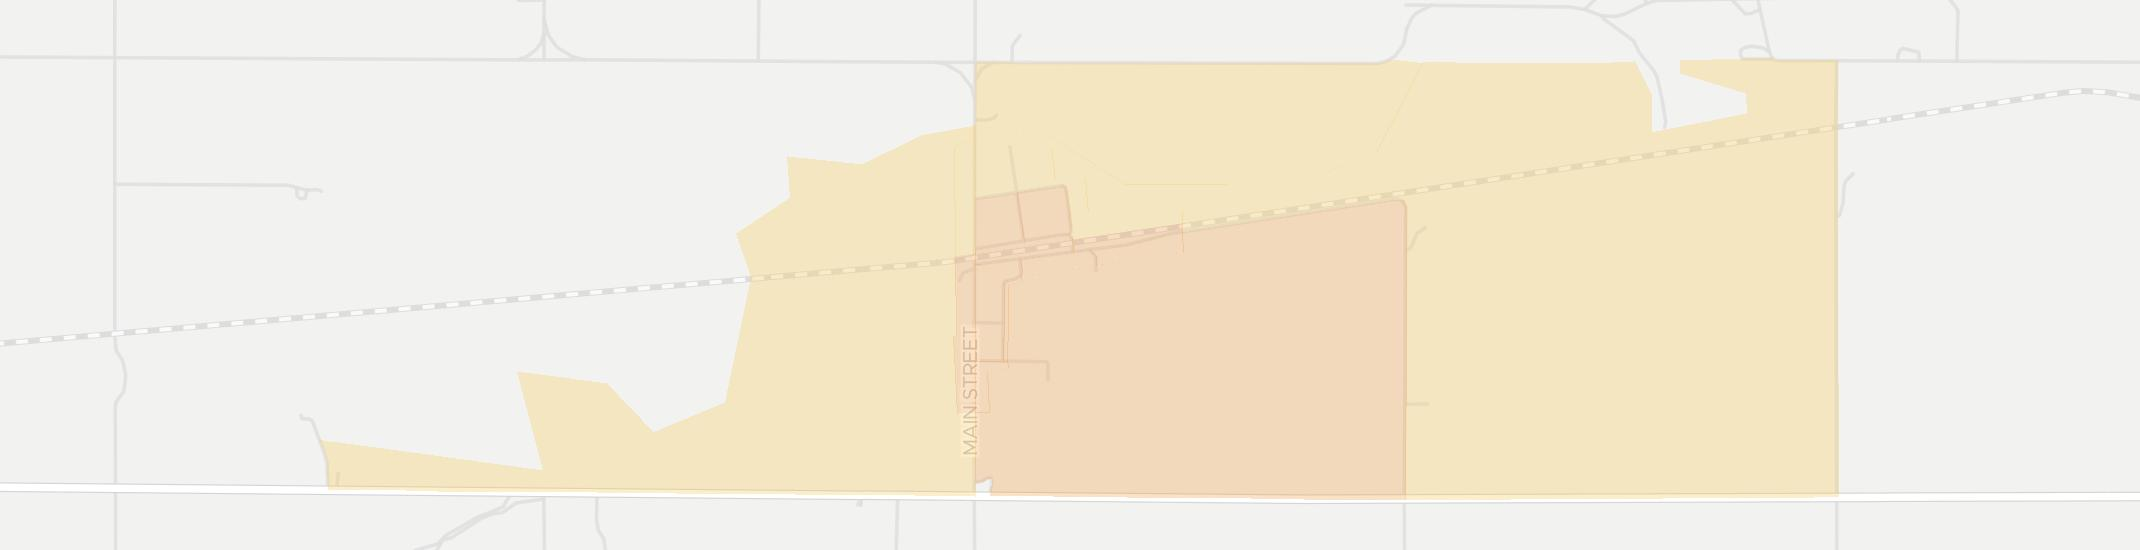 Timken Internet Competition Map. Click for interactive map.